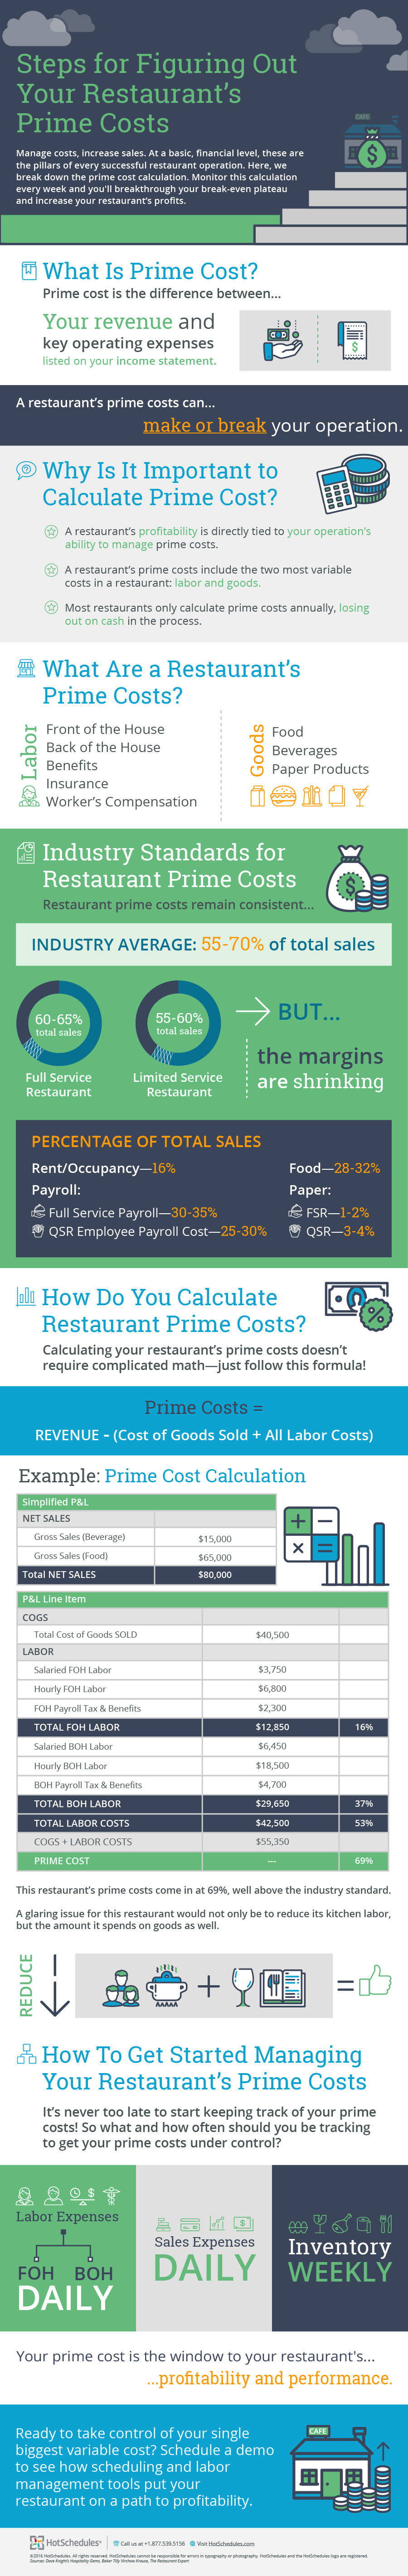 Infographic Steps FIguring Restaurant Prime Cost FINAL